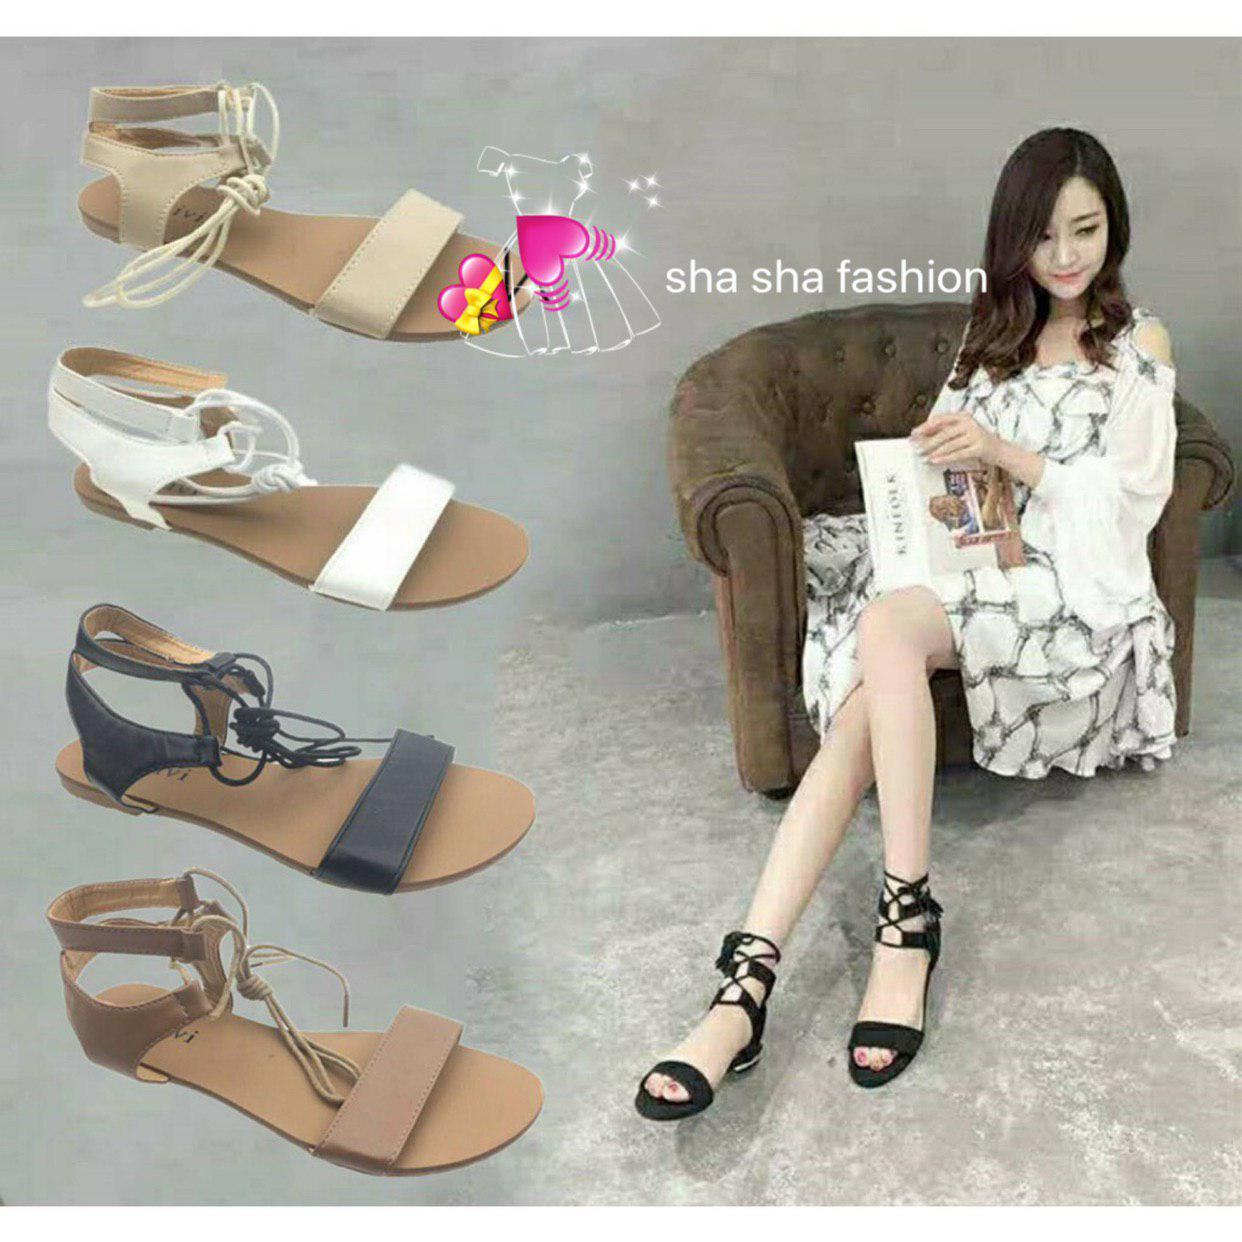 Korea Sandals By Shasha Fashion.